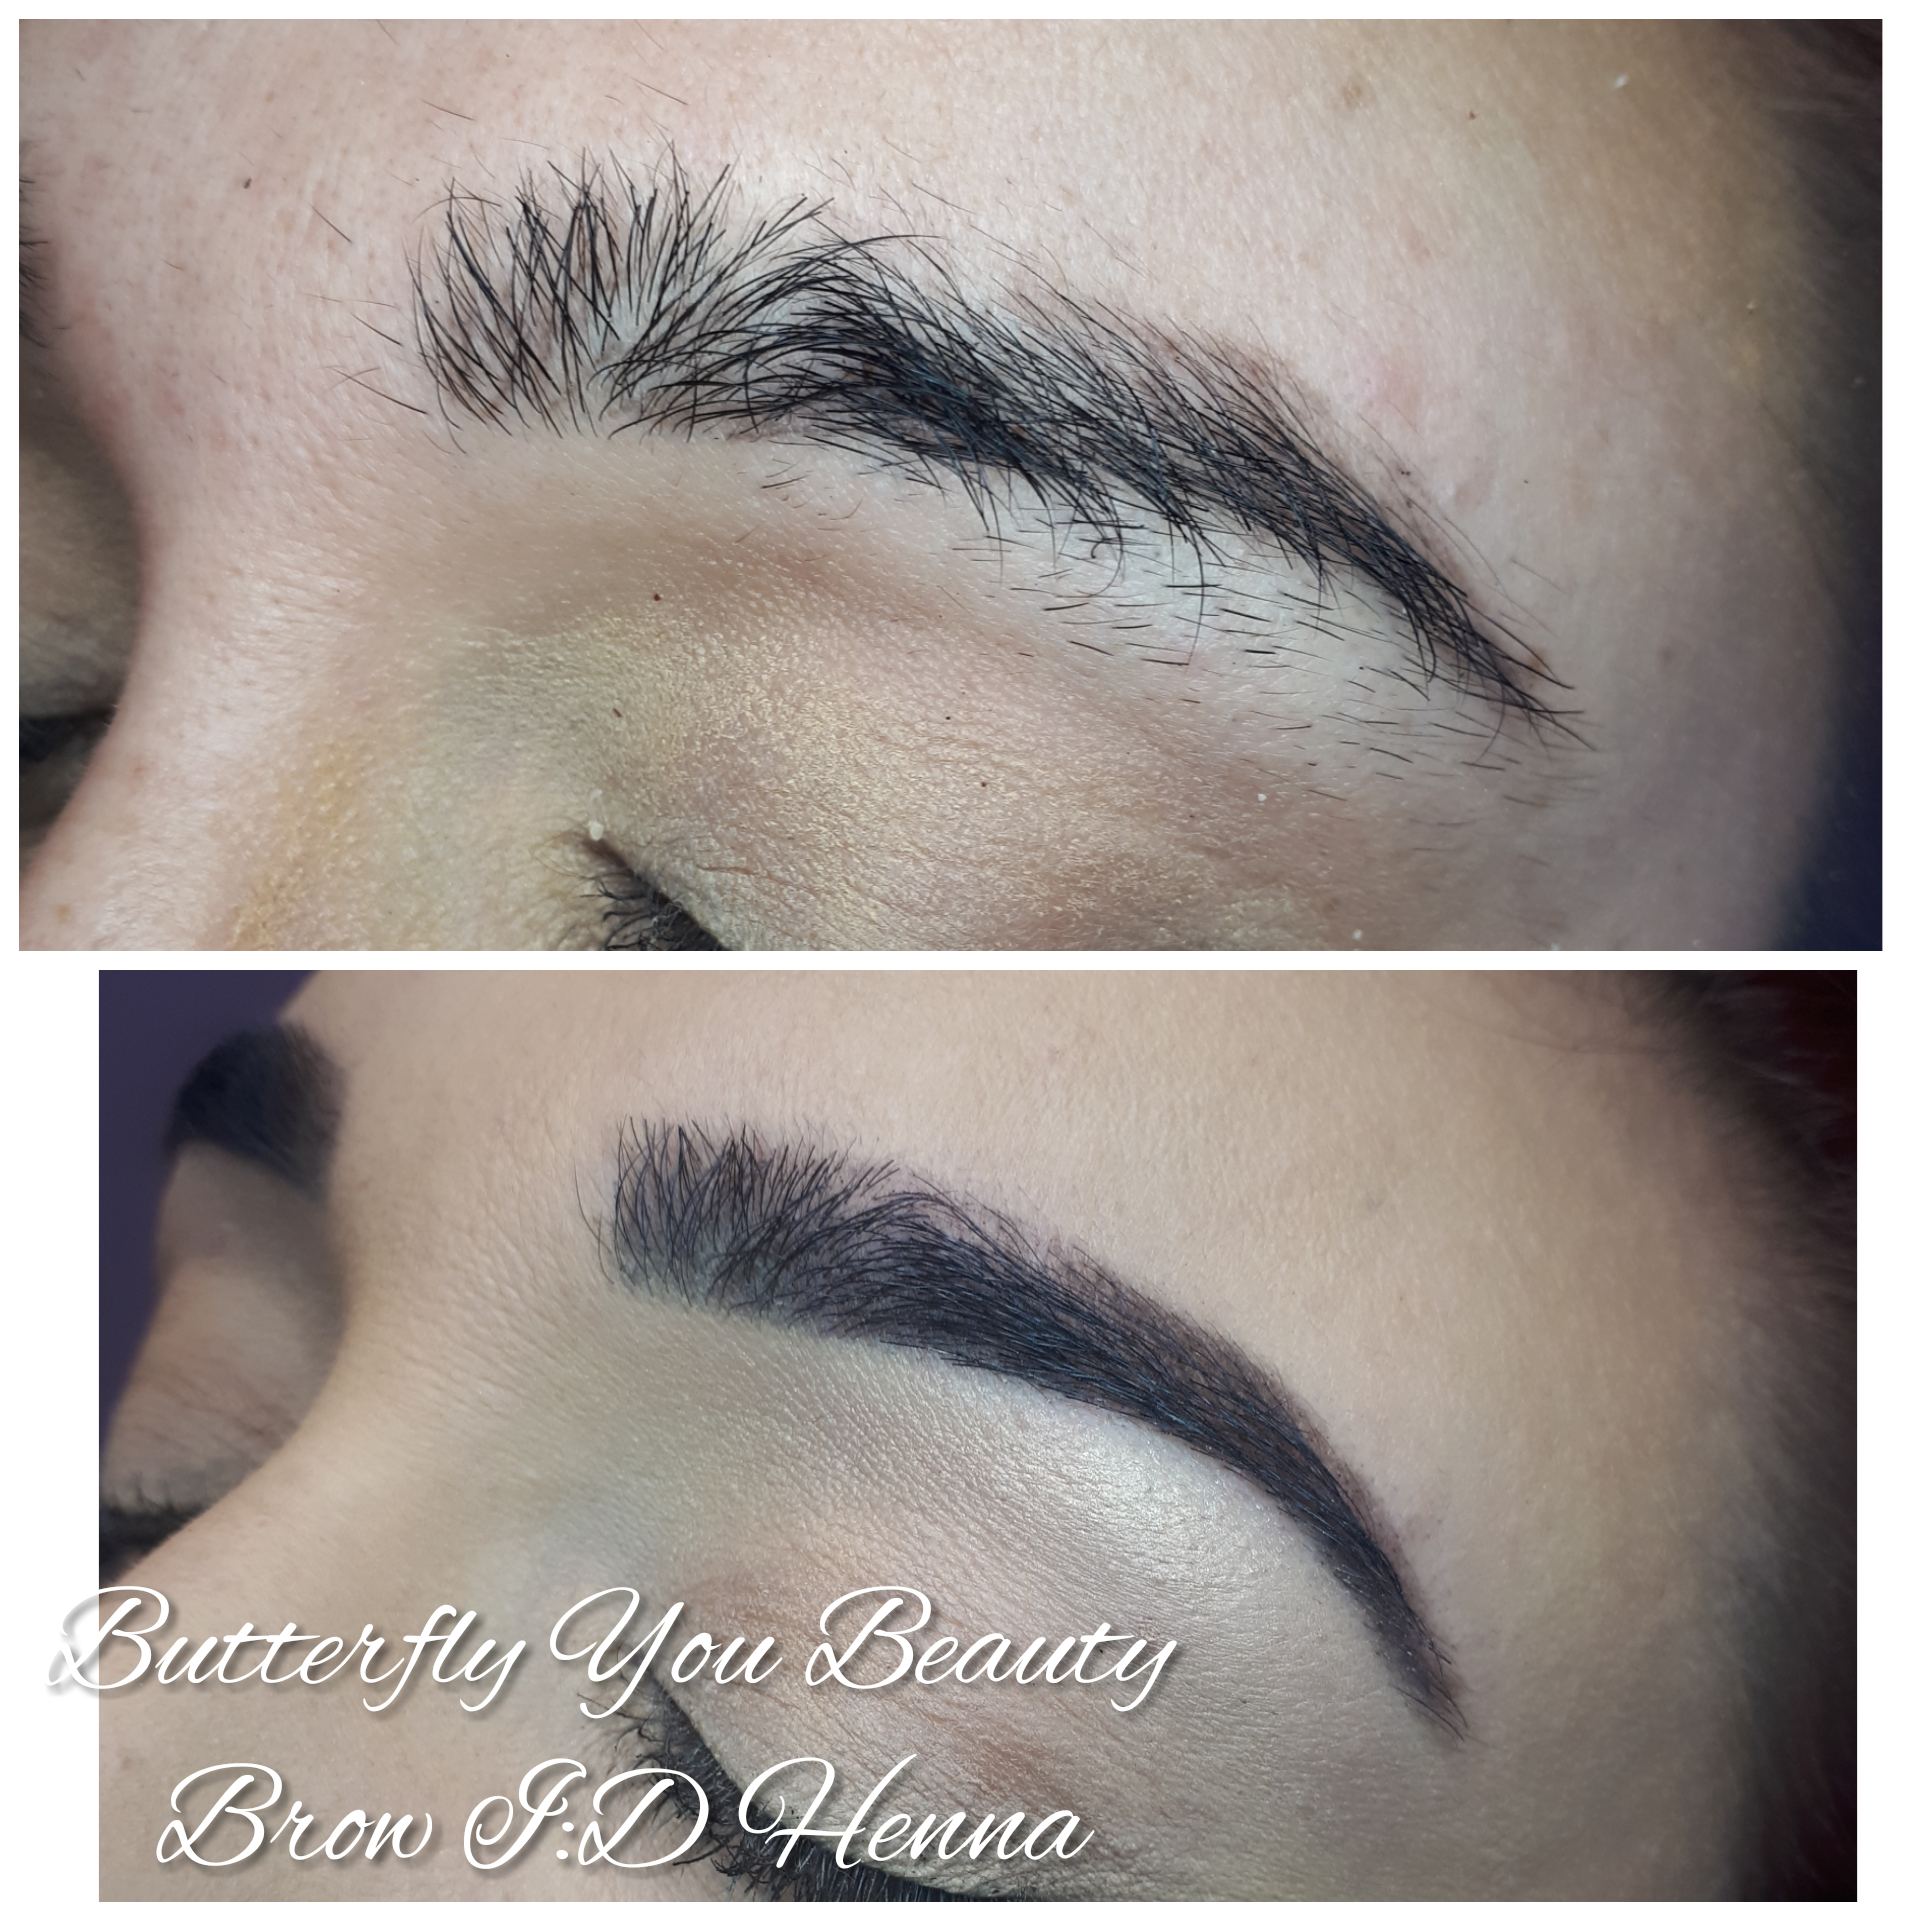 Some Amazing examples of work from one of our Brow:ID technicians.